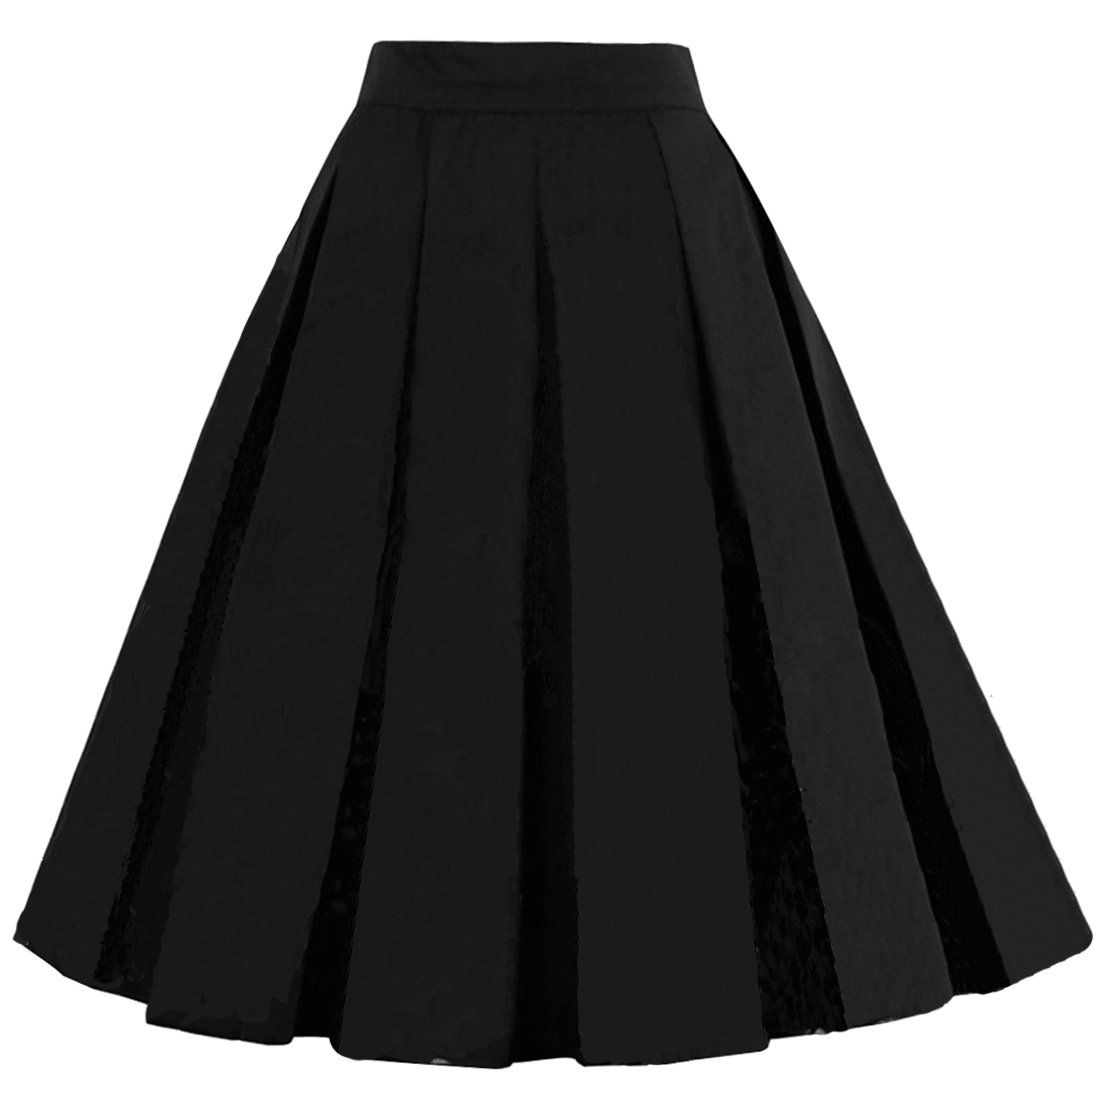 Dressever Women's Vintage A-line Printed Pleated Flared Midi Skirts Black Medium